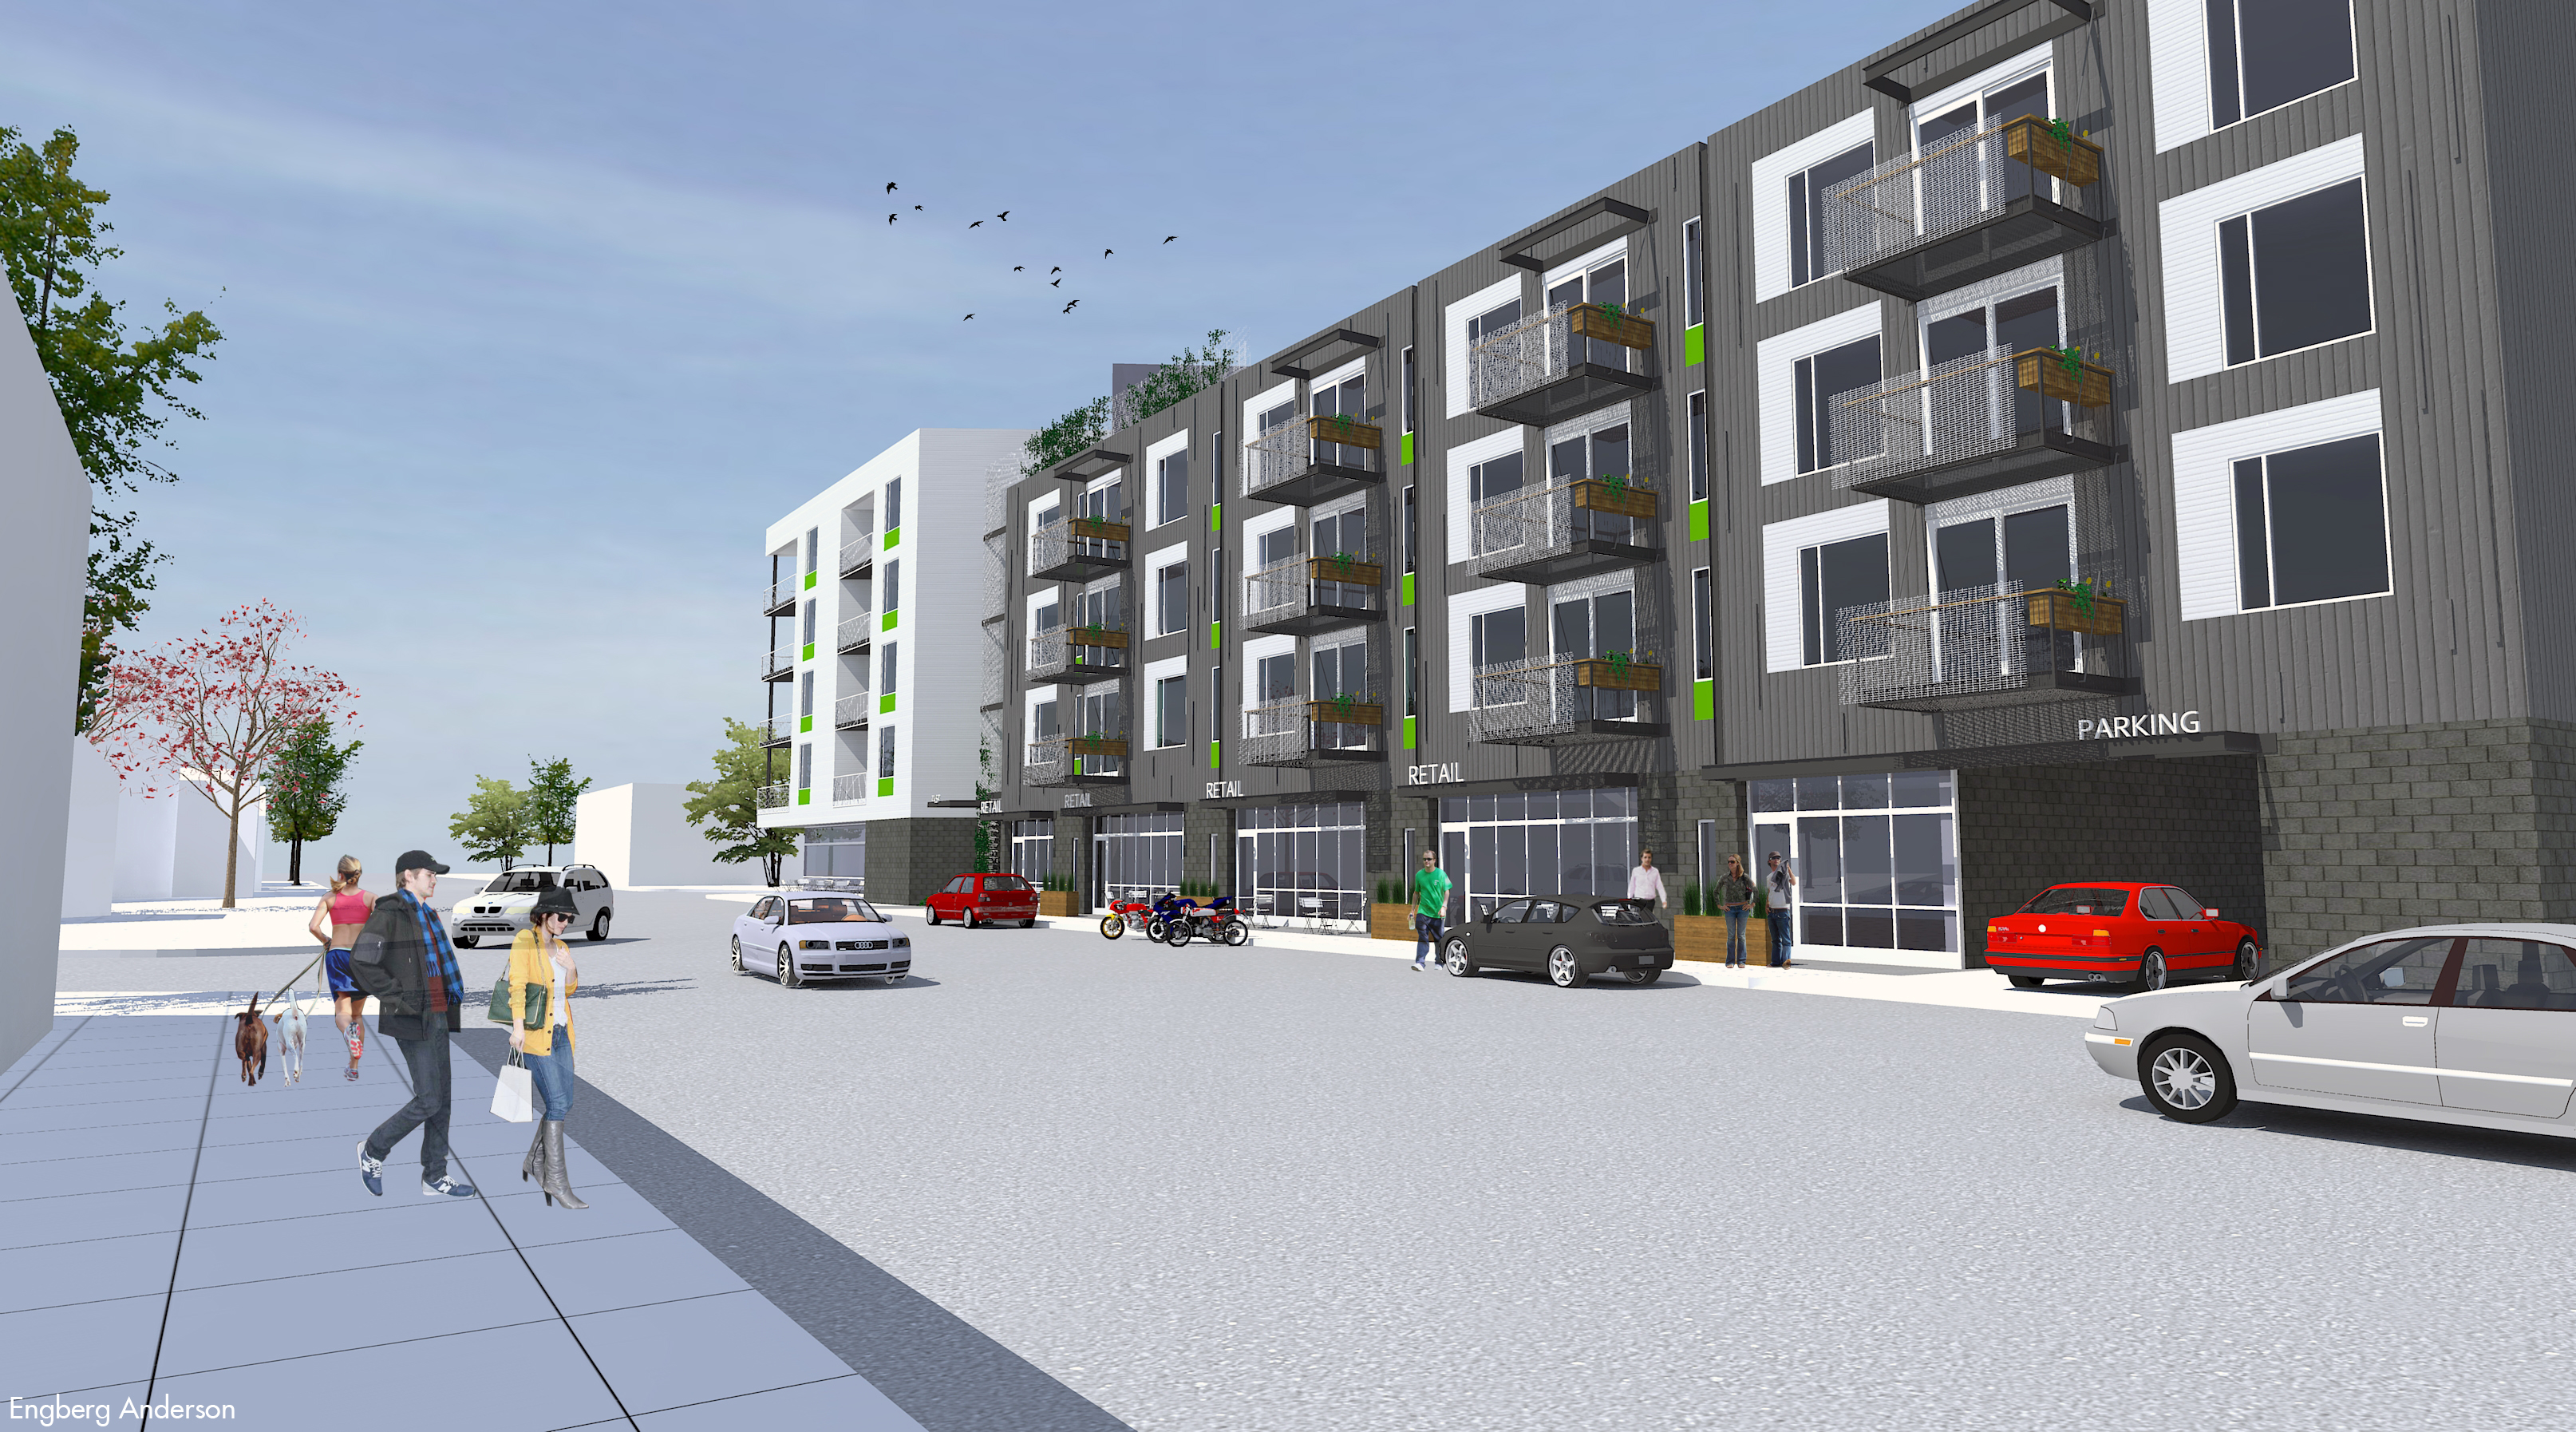 Apartment Proposal on Kinnickinnic is Recommended for Approval by City Plan Commission